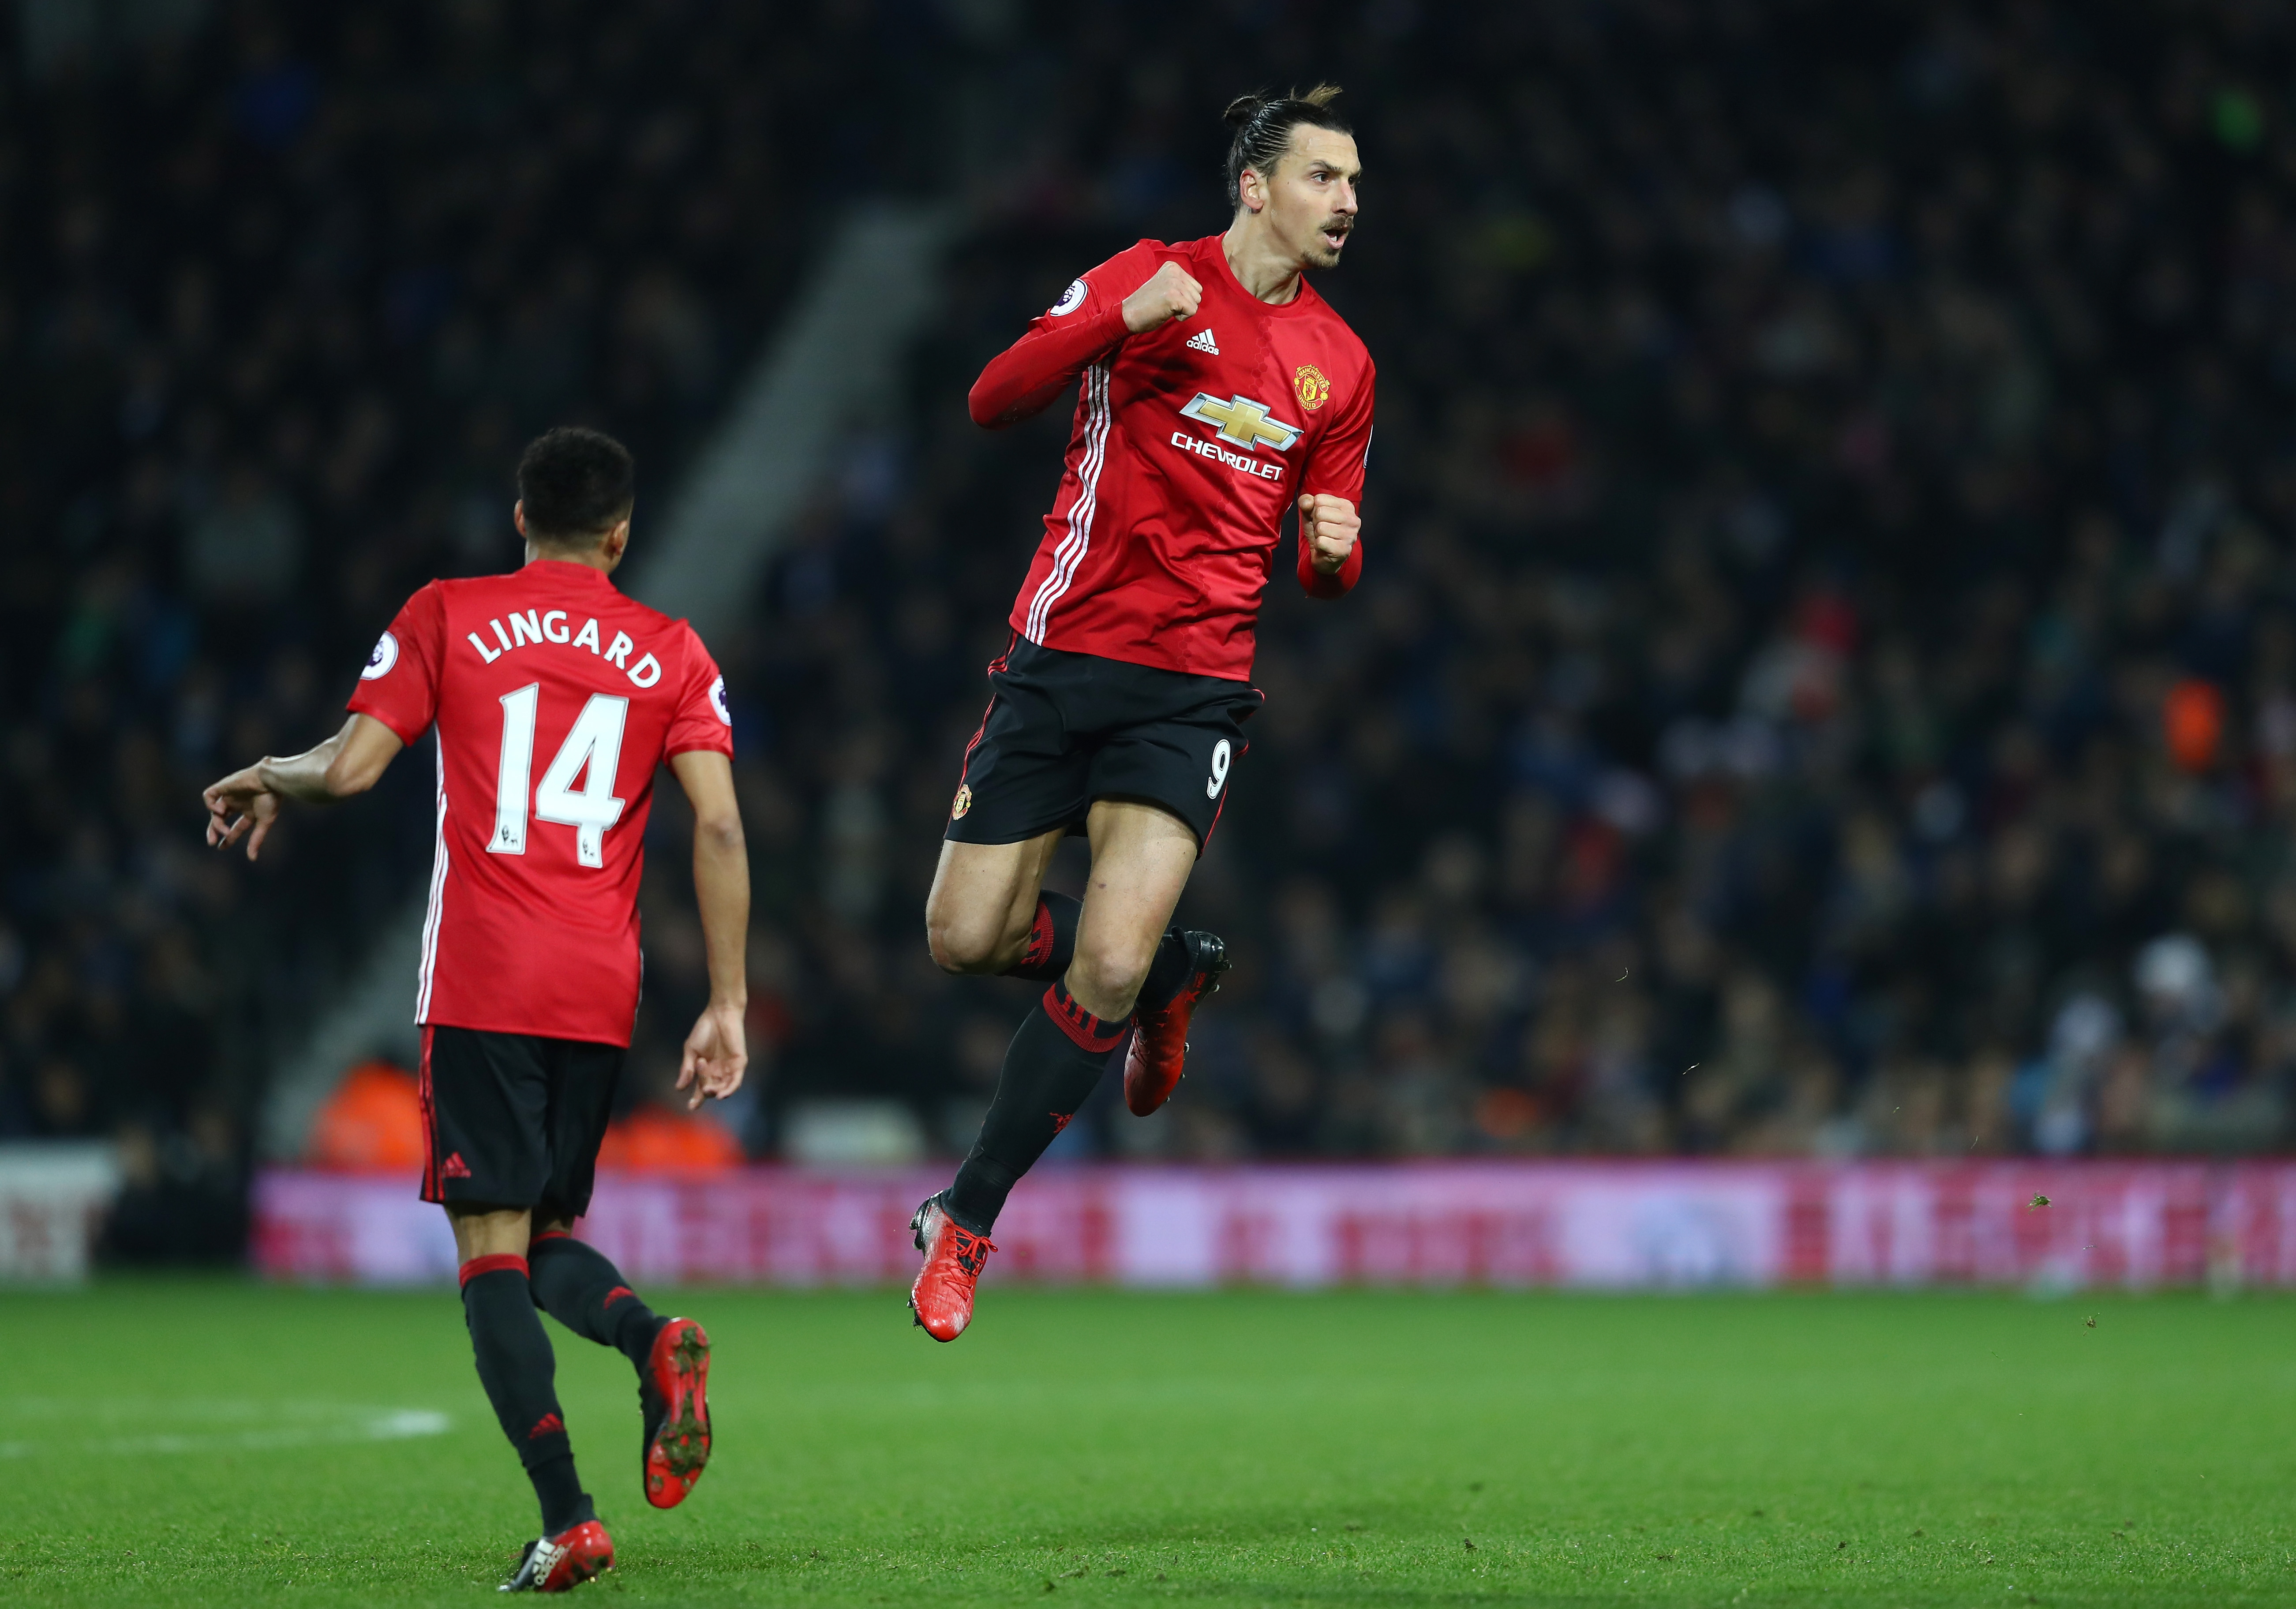 Premier League scores, Week 17: Zlatan Ibrahimovic's decline was greatly exaggerated